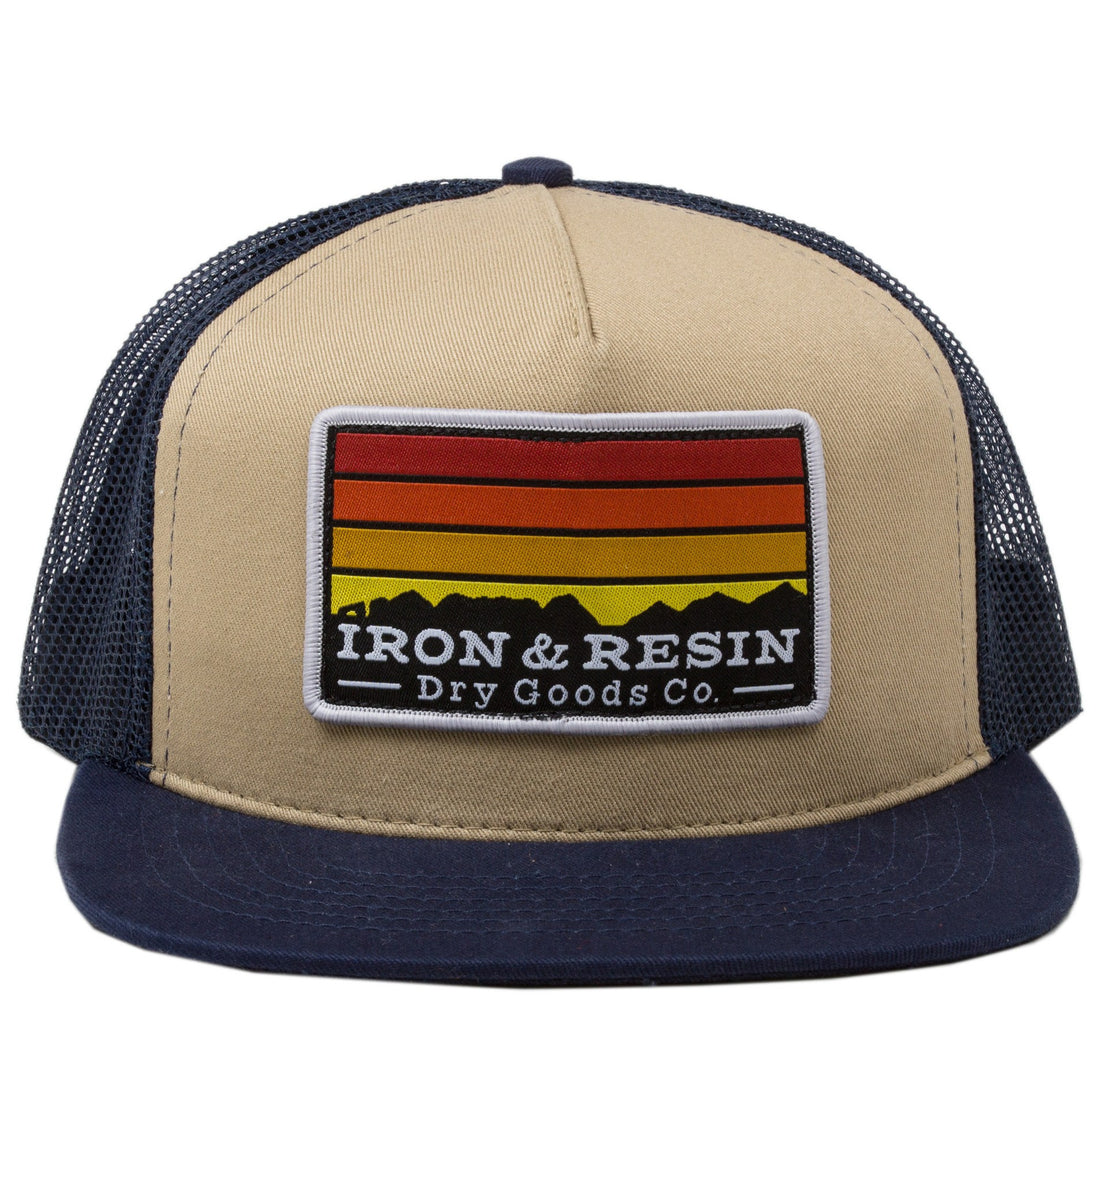 INR Horizon Hat - Accessories: Headwear: Hats - Iron and Resin